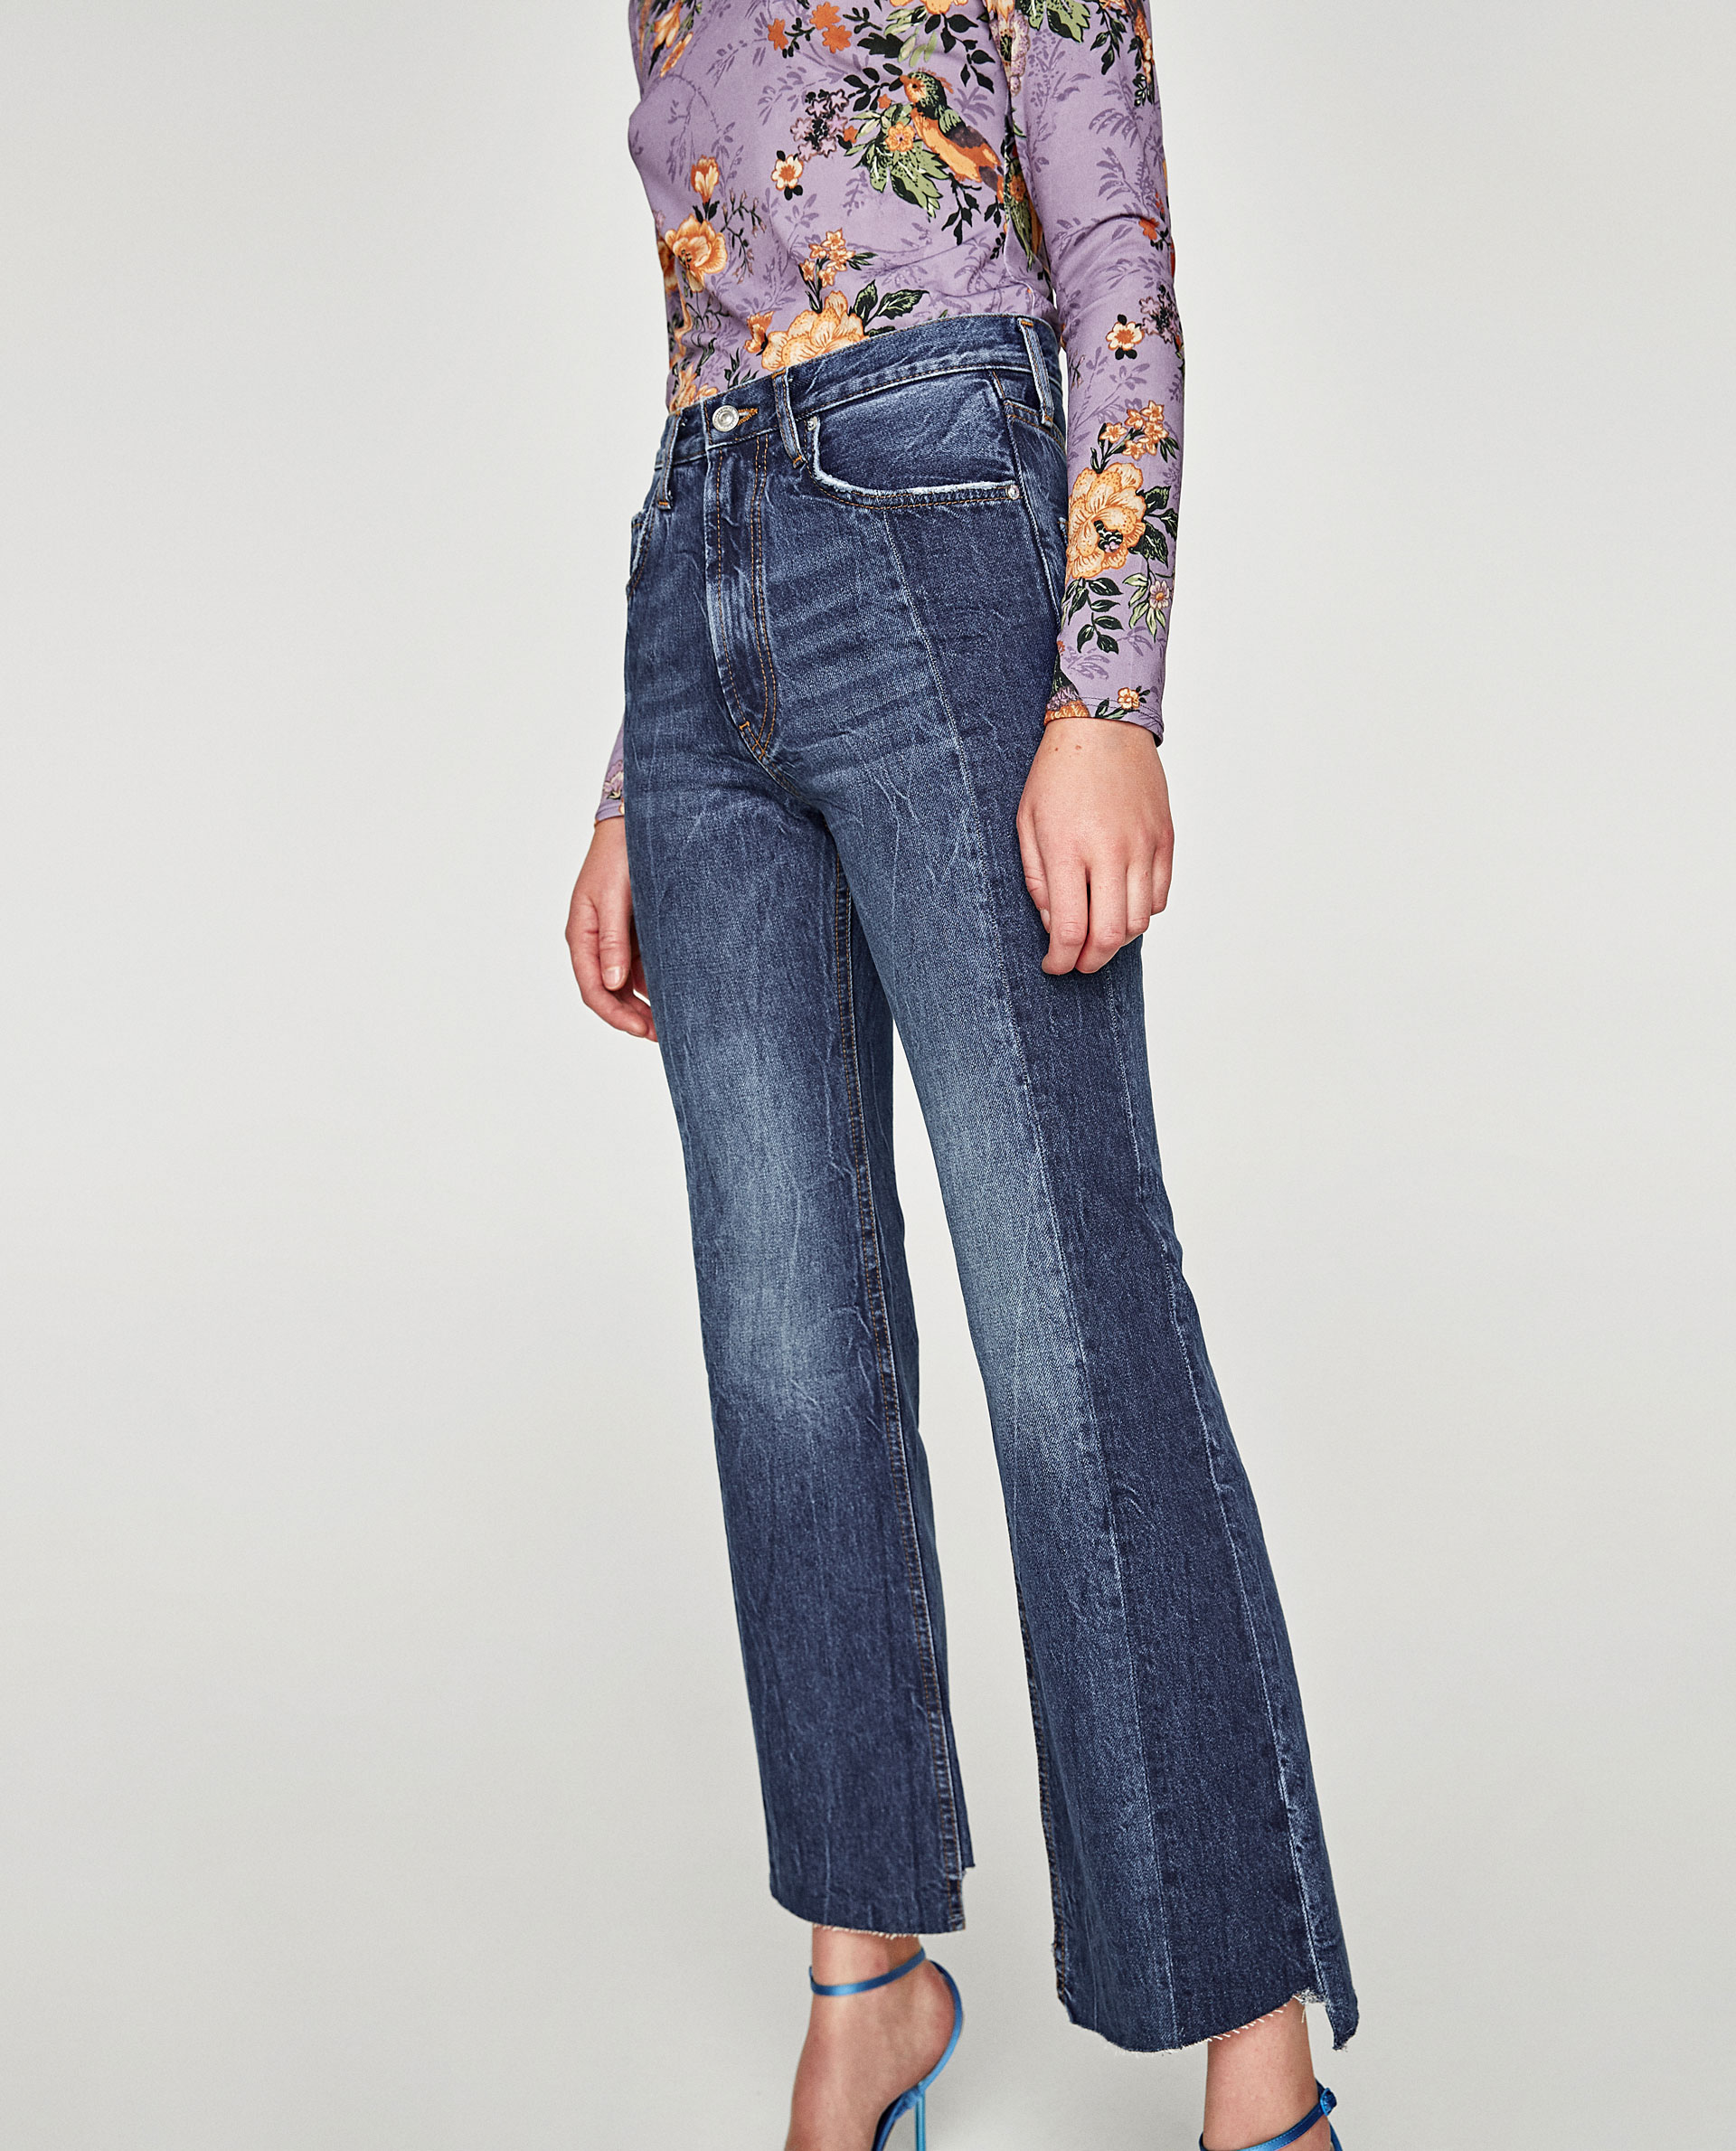 ROSE & IVY Journal The Find The Perfect Jean for Fall